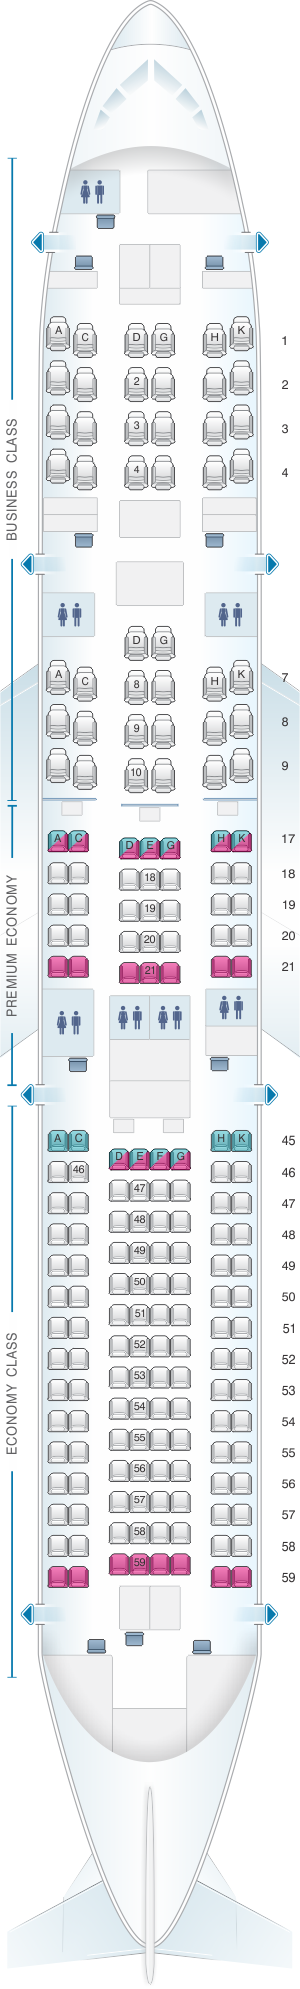 Seat map for Japan Airlines (JAL) Boeing B787-9 E71